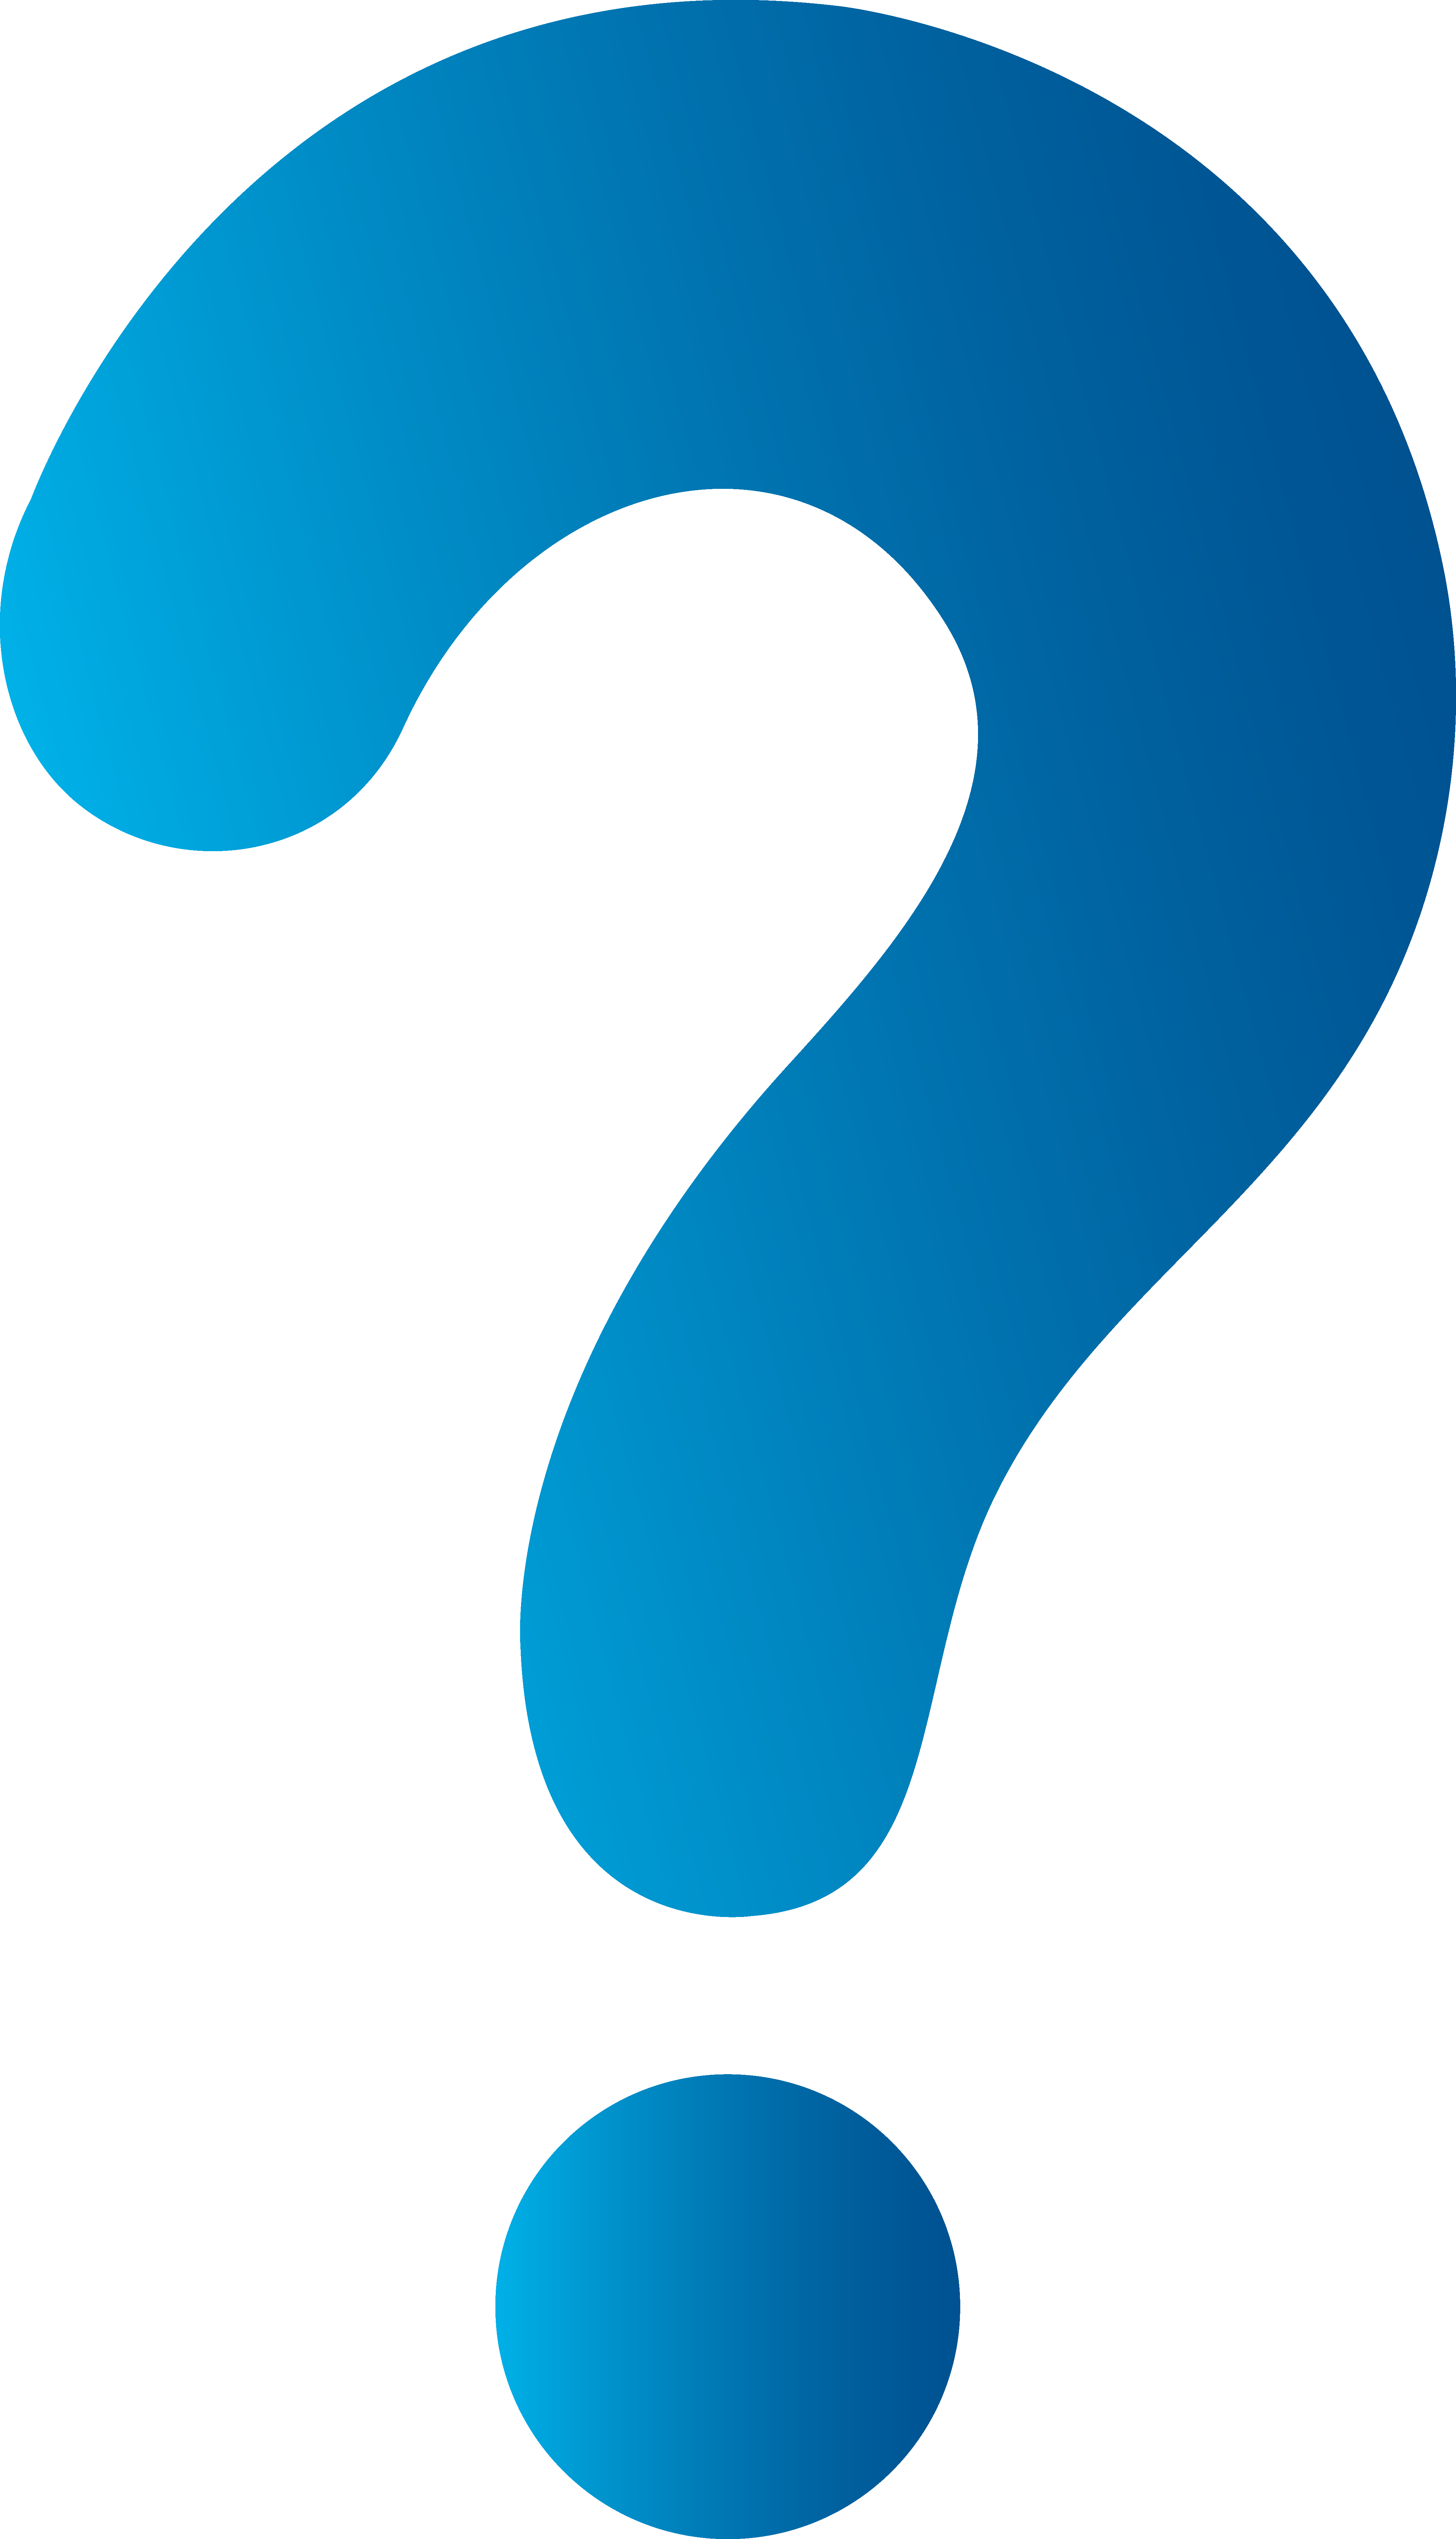 question mark images animated - photo #38